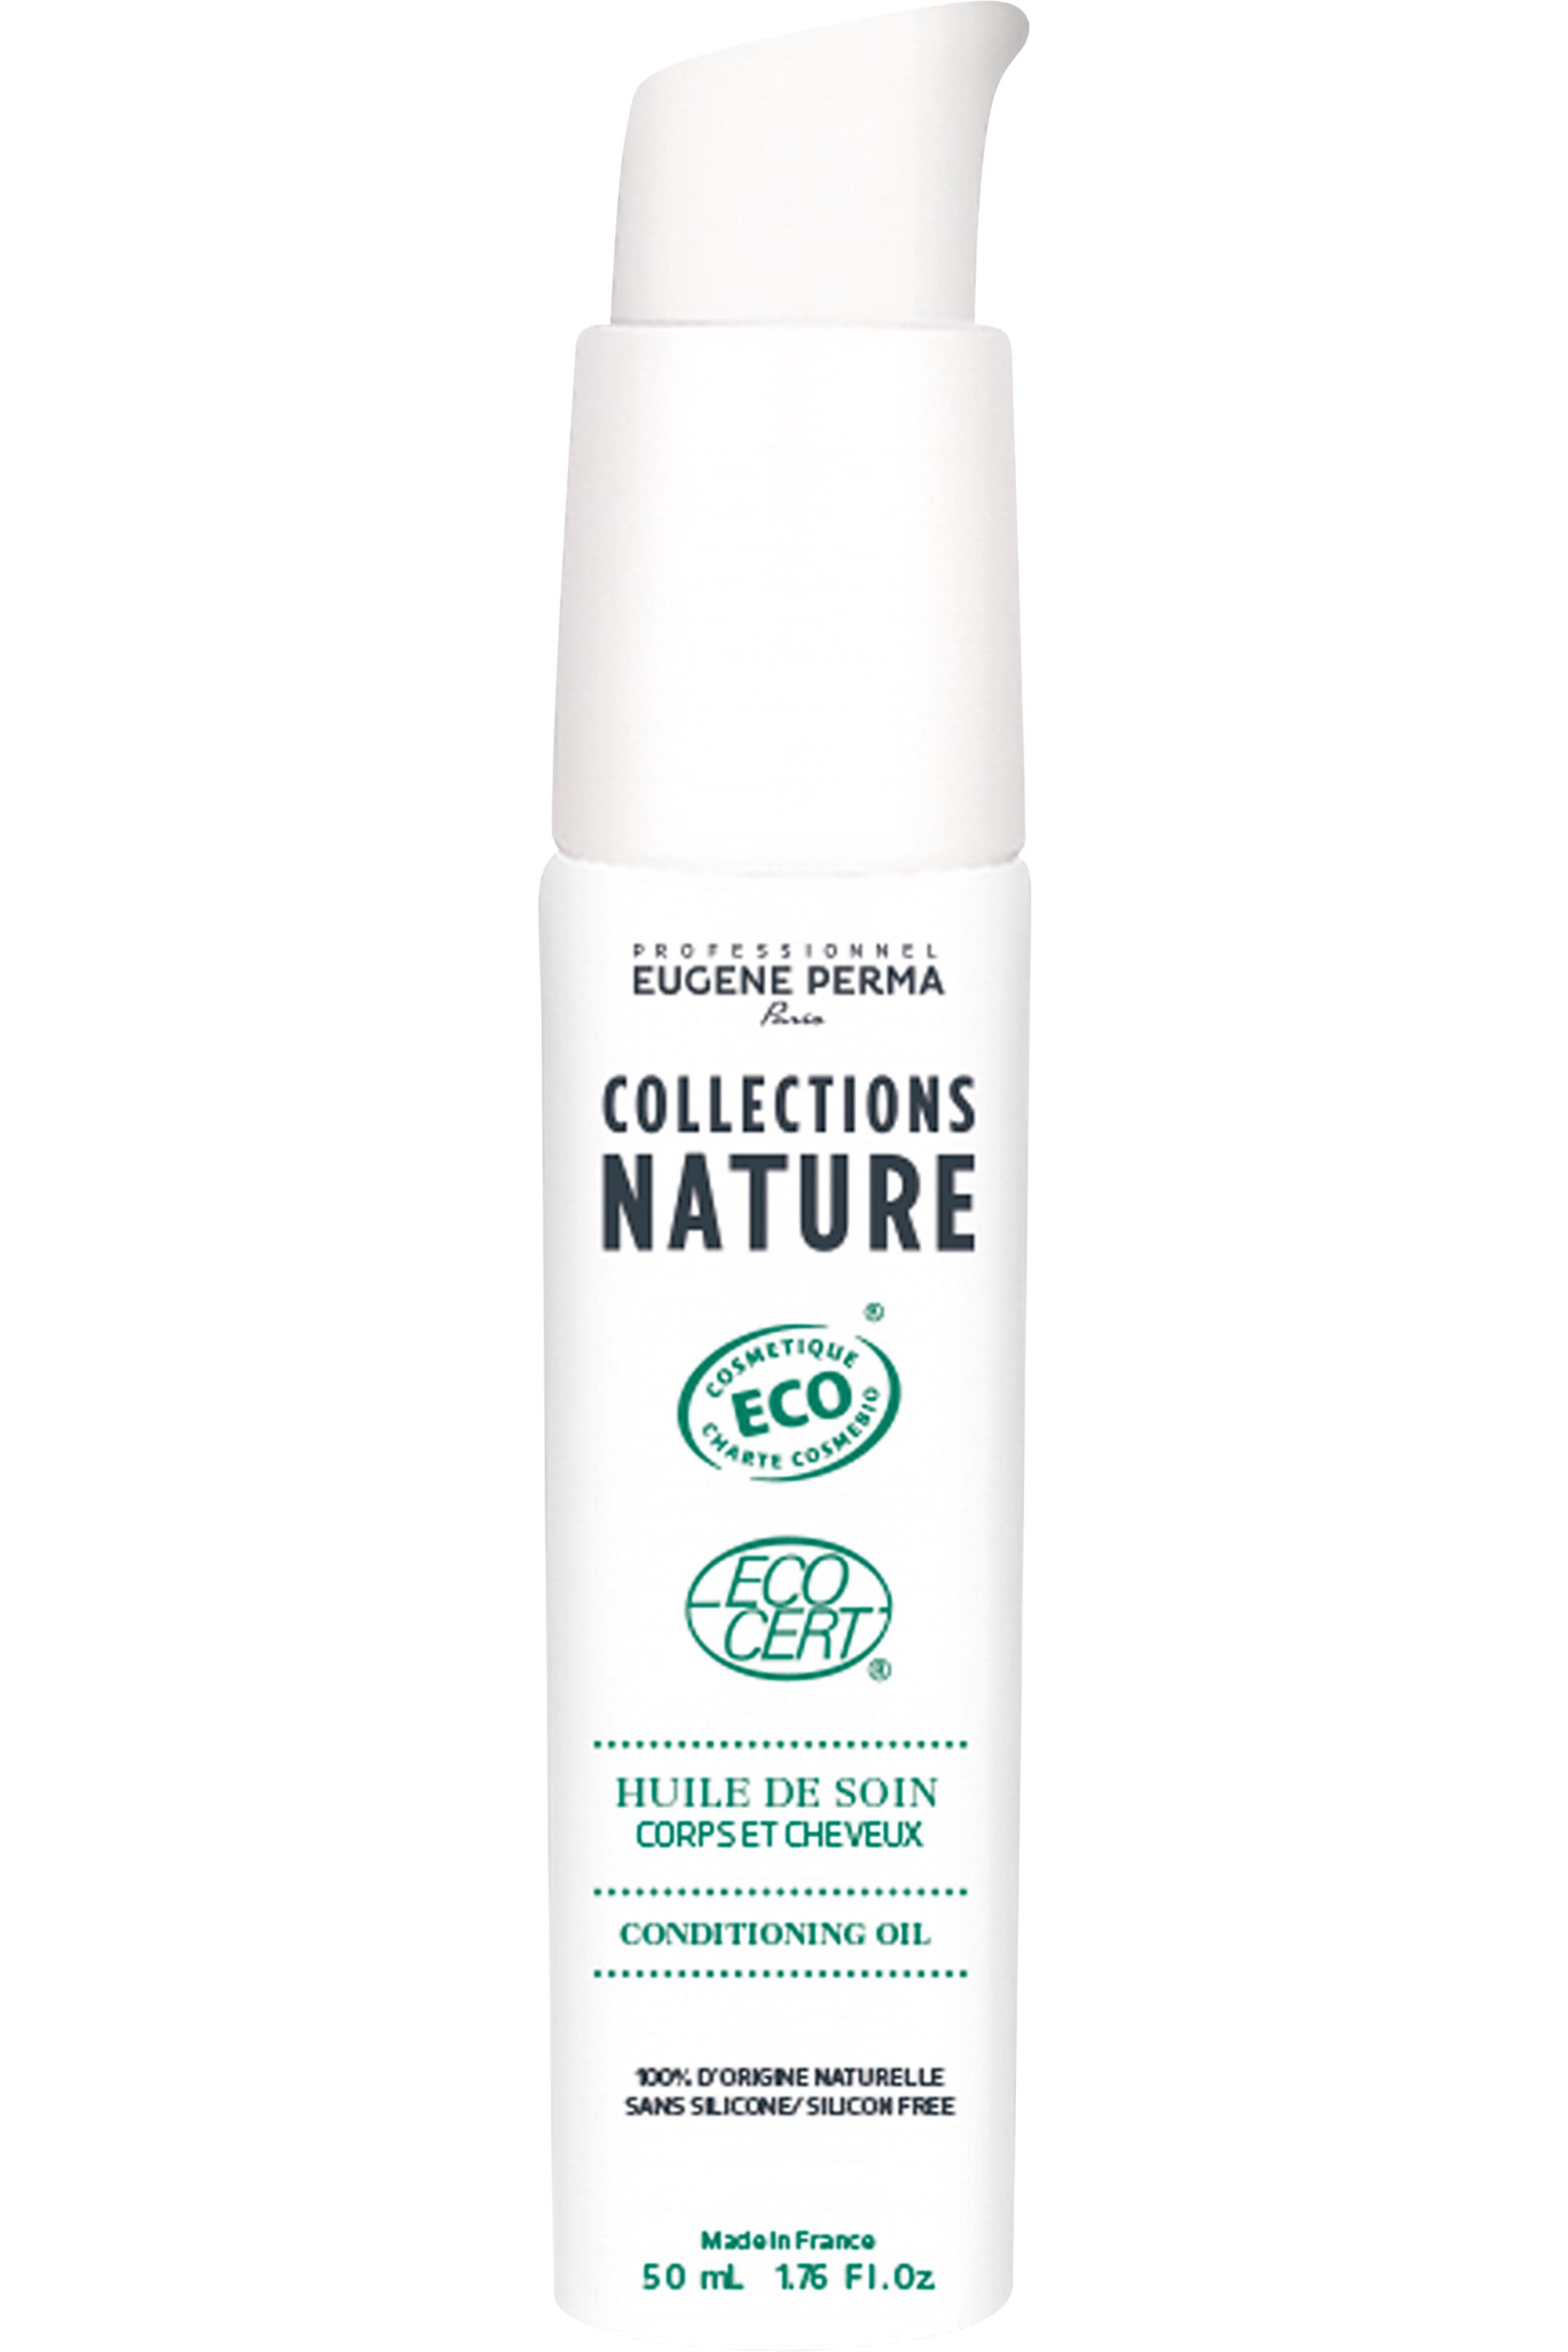 Blissim : Collections Nature - Huile de soin corps & cheveux - Huile de soin corps & cheveux